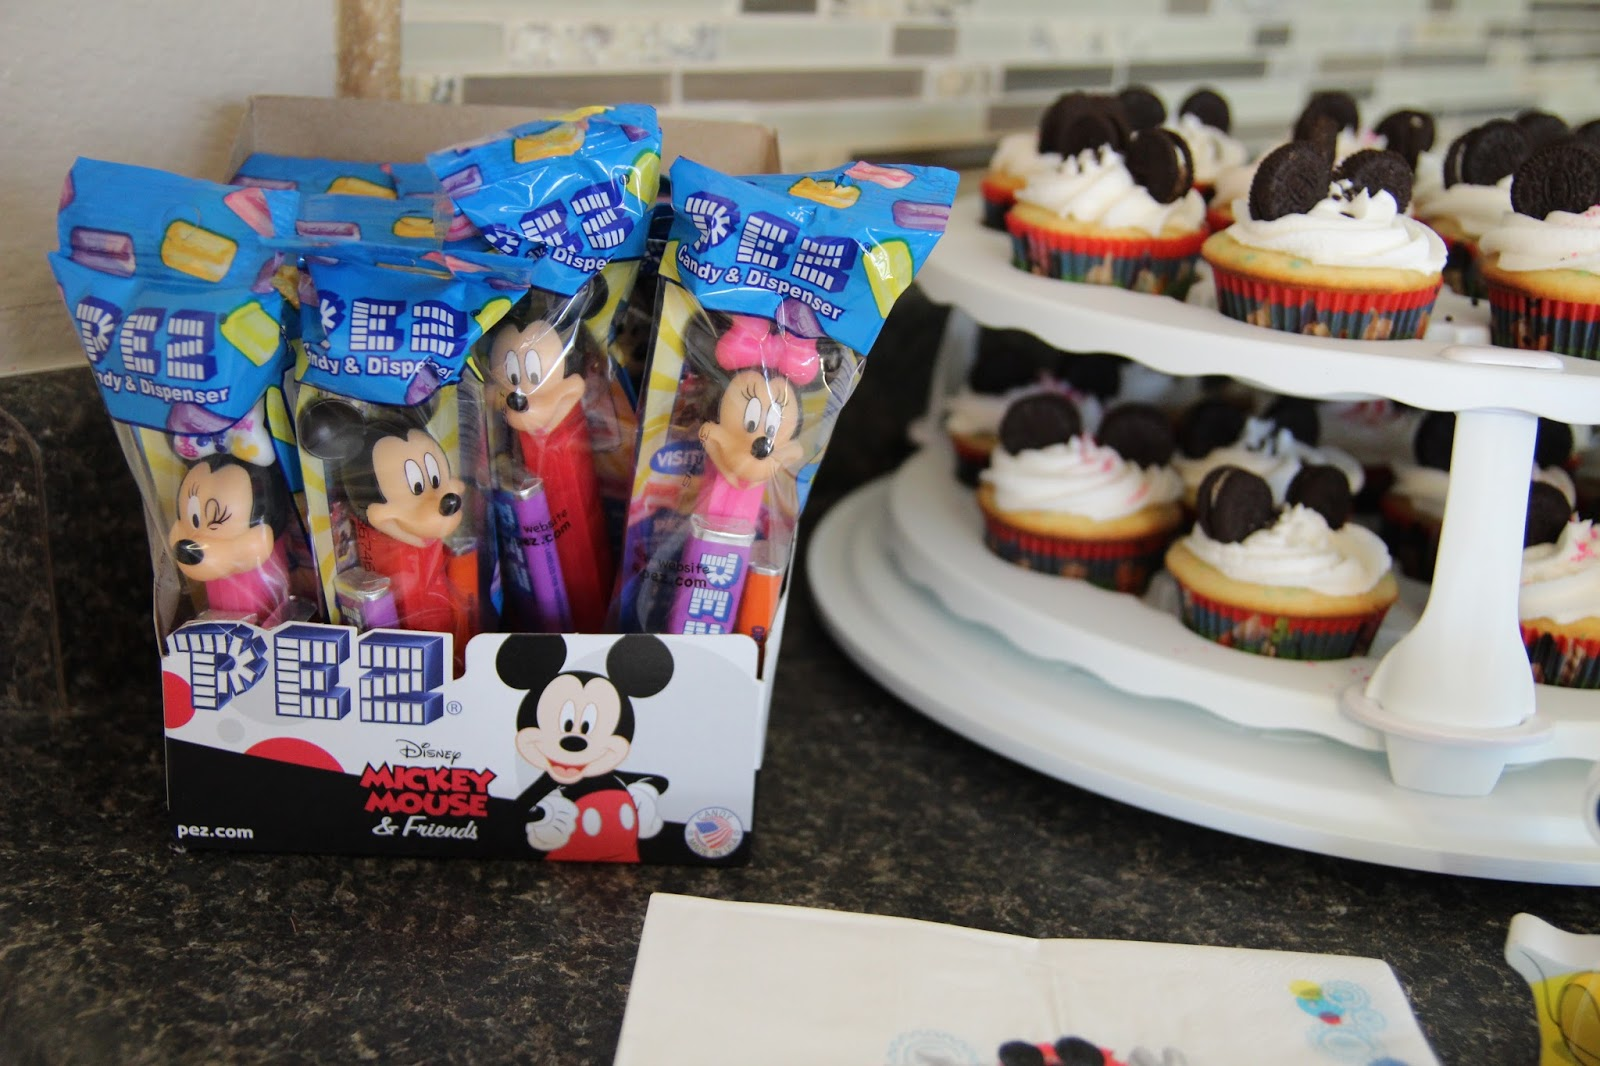 To Do A Small Party Favor For The Kiddos Who Are In Attendance Wesley LOVES Pez So I Ordered Box Of Mickey Mouse And Friends Dispensers From Amazon